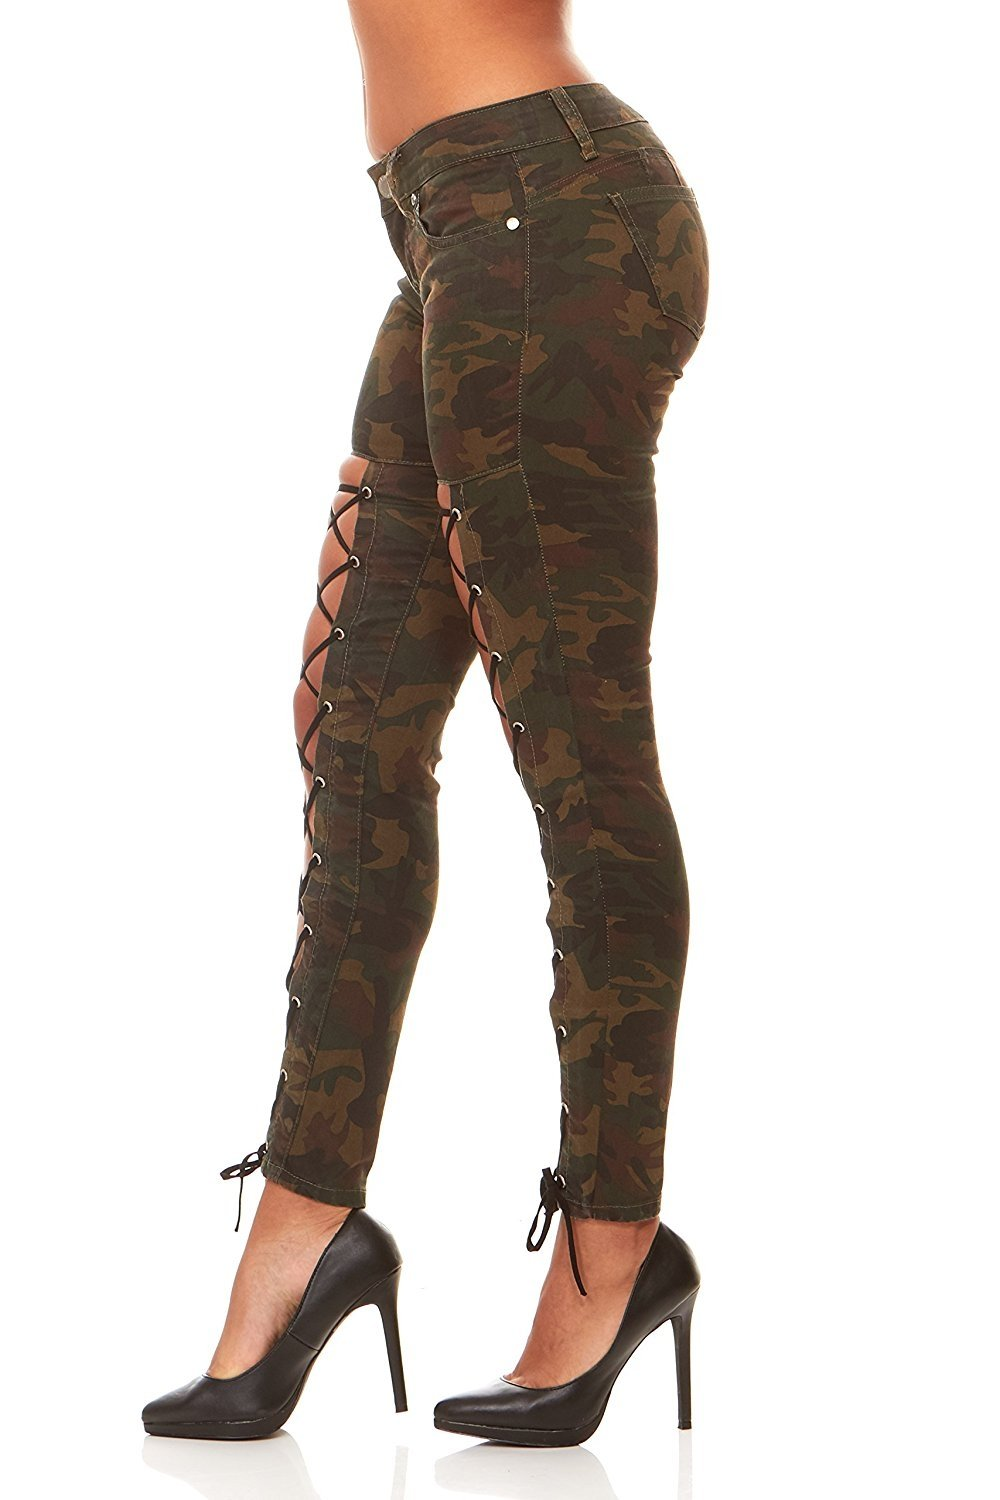 VIP Jeans for women Skinny Jeans with Lace Up Legs  Butt Lift  Slim Fit Stretchy Jeans sexy comfort Camo or Black in Junior and Plus sizes